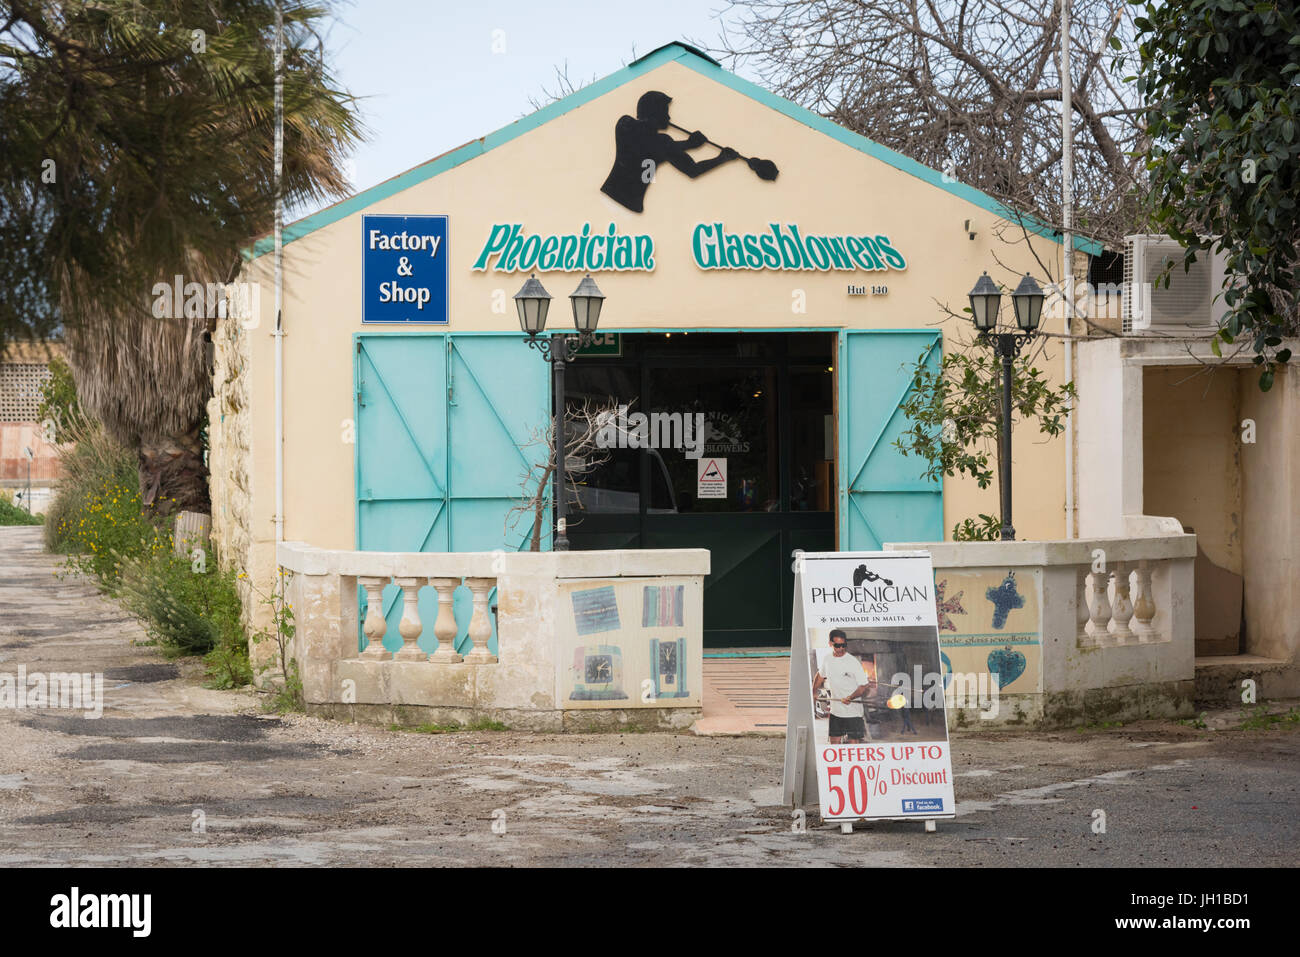 Phoenician Glassblowers craft shops at the artisan village and Ta' Qali Crafts Centre and artisan village Malta - Stock Image